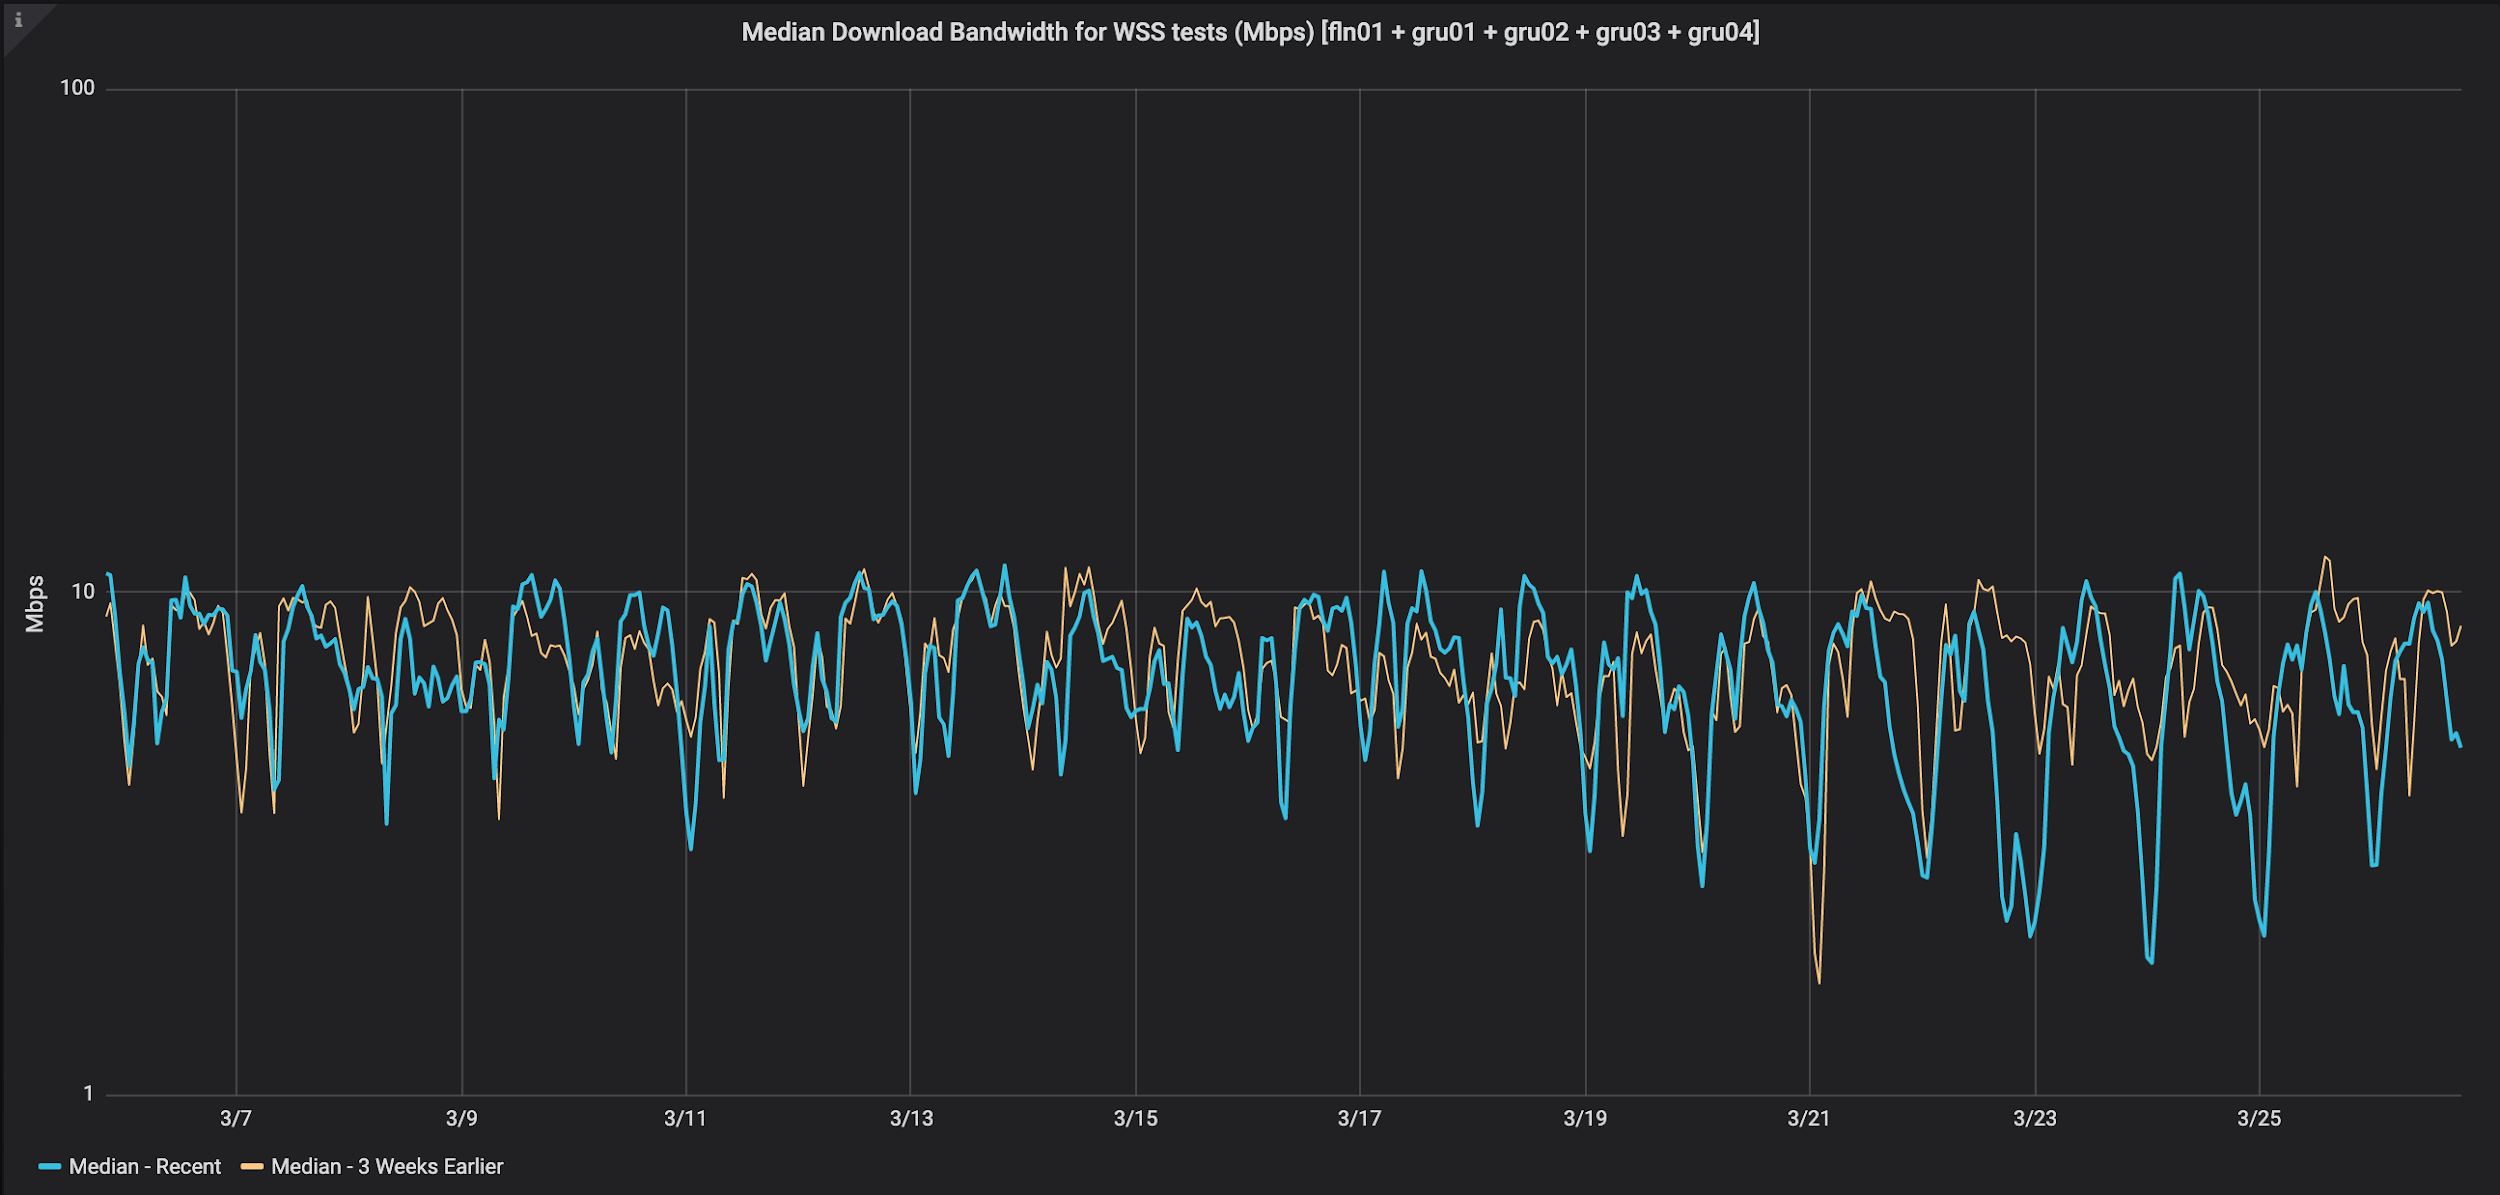 Median Download Bandwidth for WSS tests, São Paulo, Brazil (tests/min)